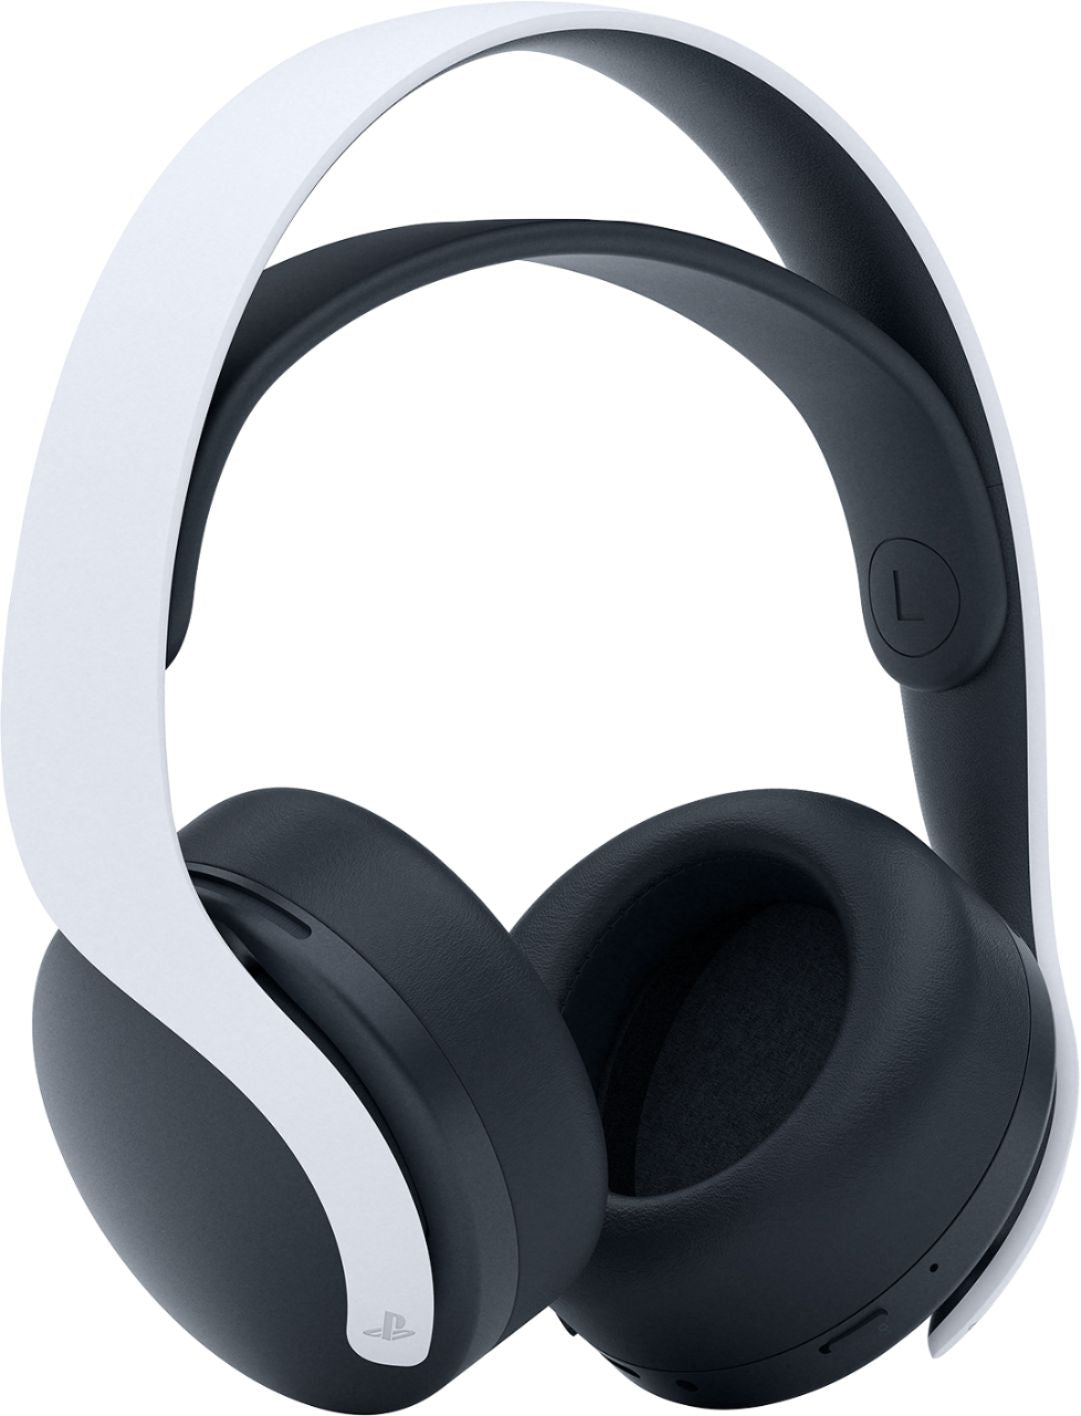 Sony - PlayStation - Pulse 3D Wireless Headset (Compatible for both Playstation 4 & Playstation 5) - White - PS5